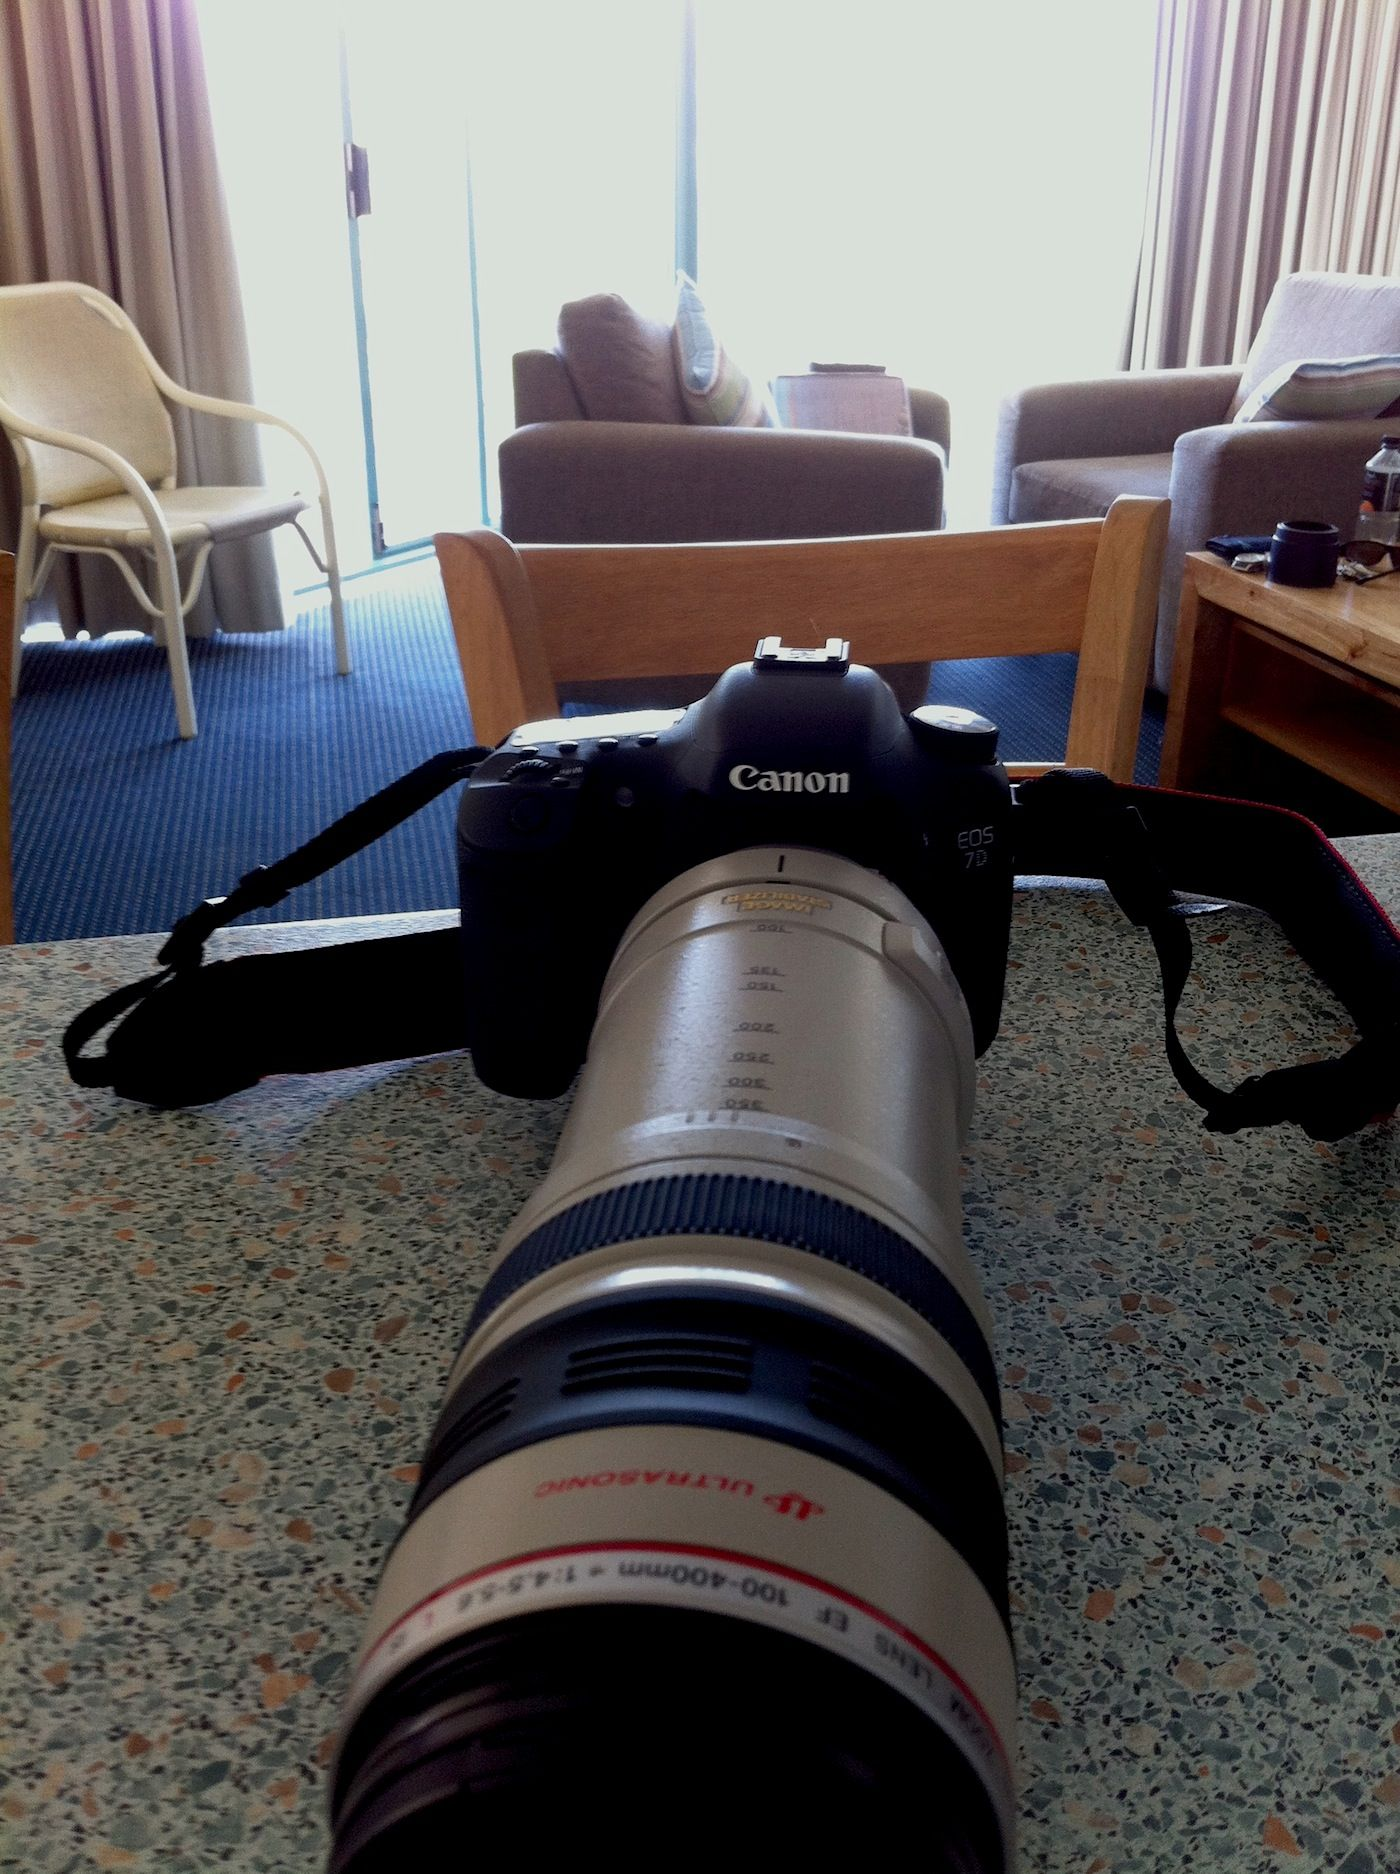 Canon 100 to 400 cool lens that does a good job